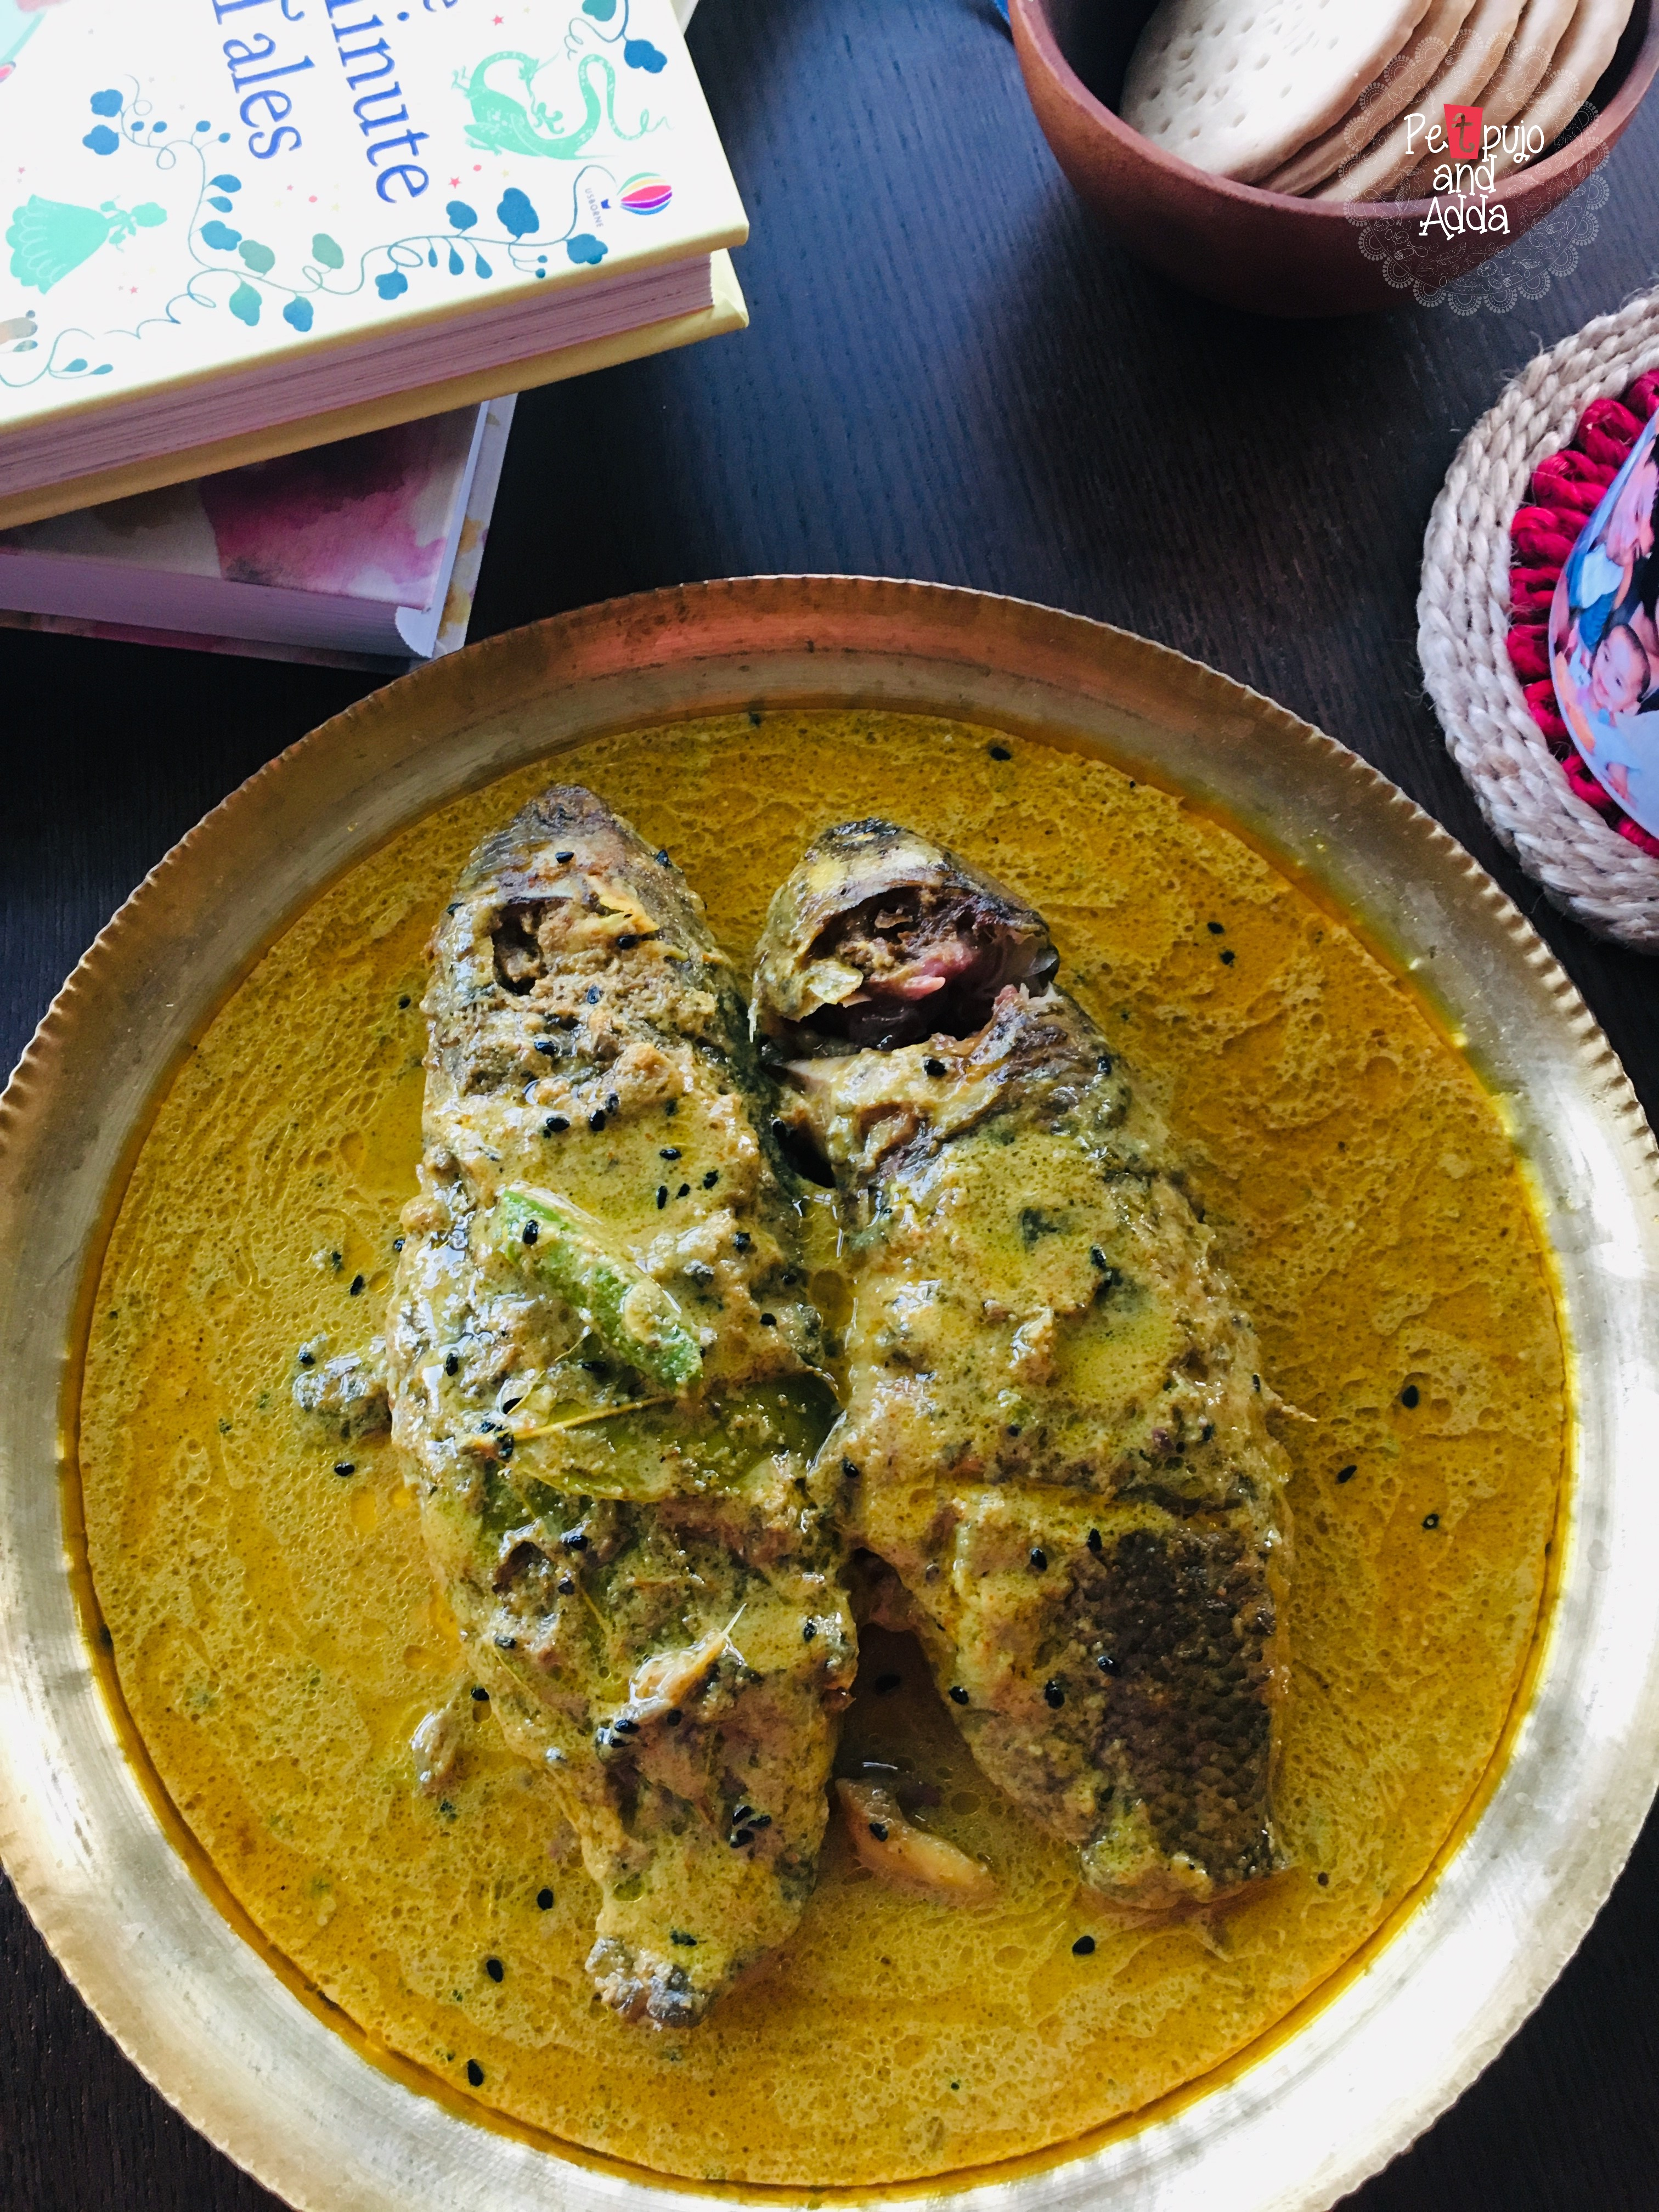 Koi Macher Kalia( Climbing Perch in a coconut milk gravy) and a mother's Whimsical life